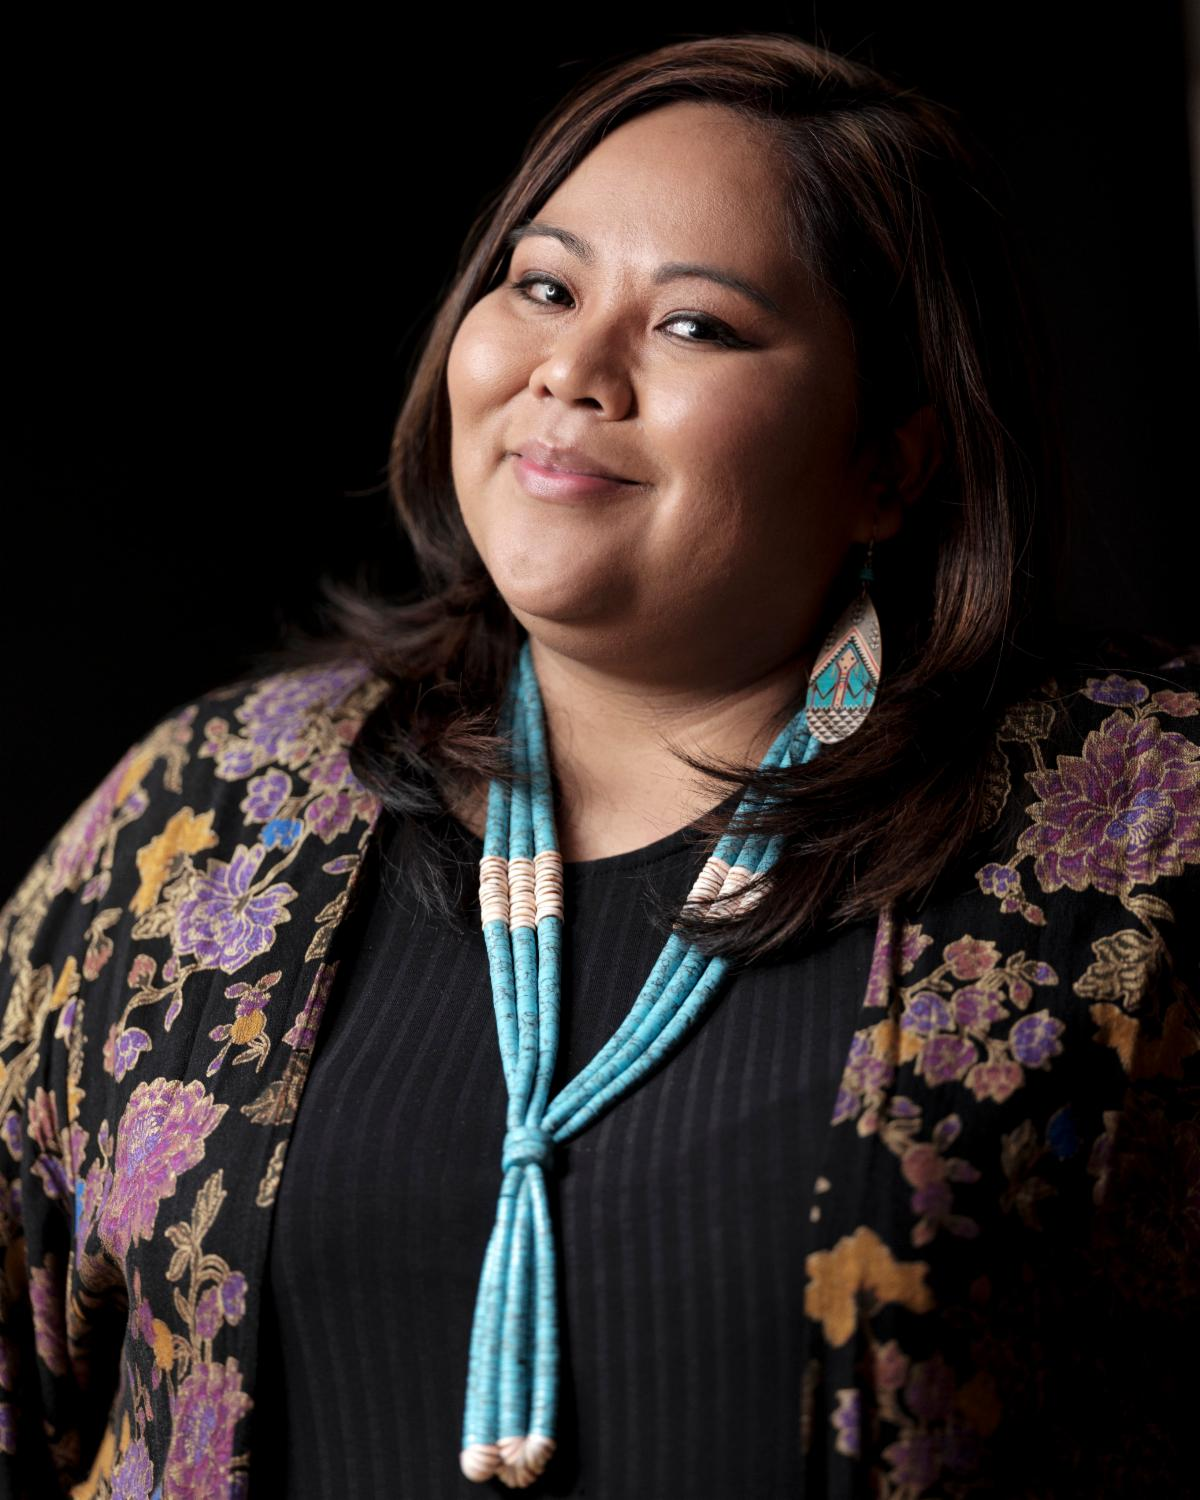 Institute of American Indian Arts (IAIA) Appoints Roanna Shebala as Alumni Relations Officer